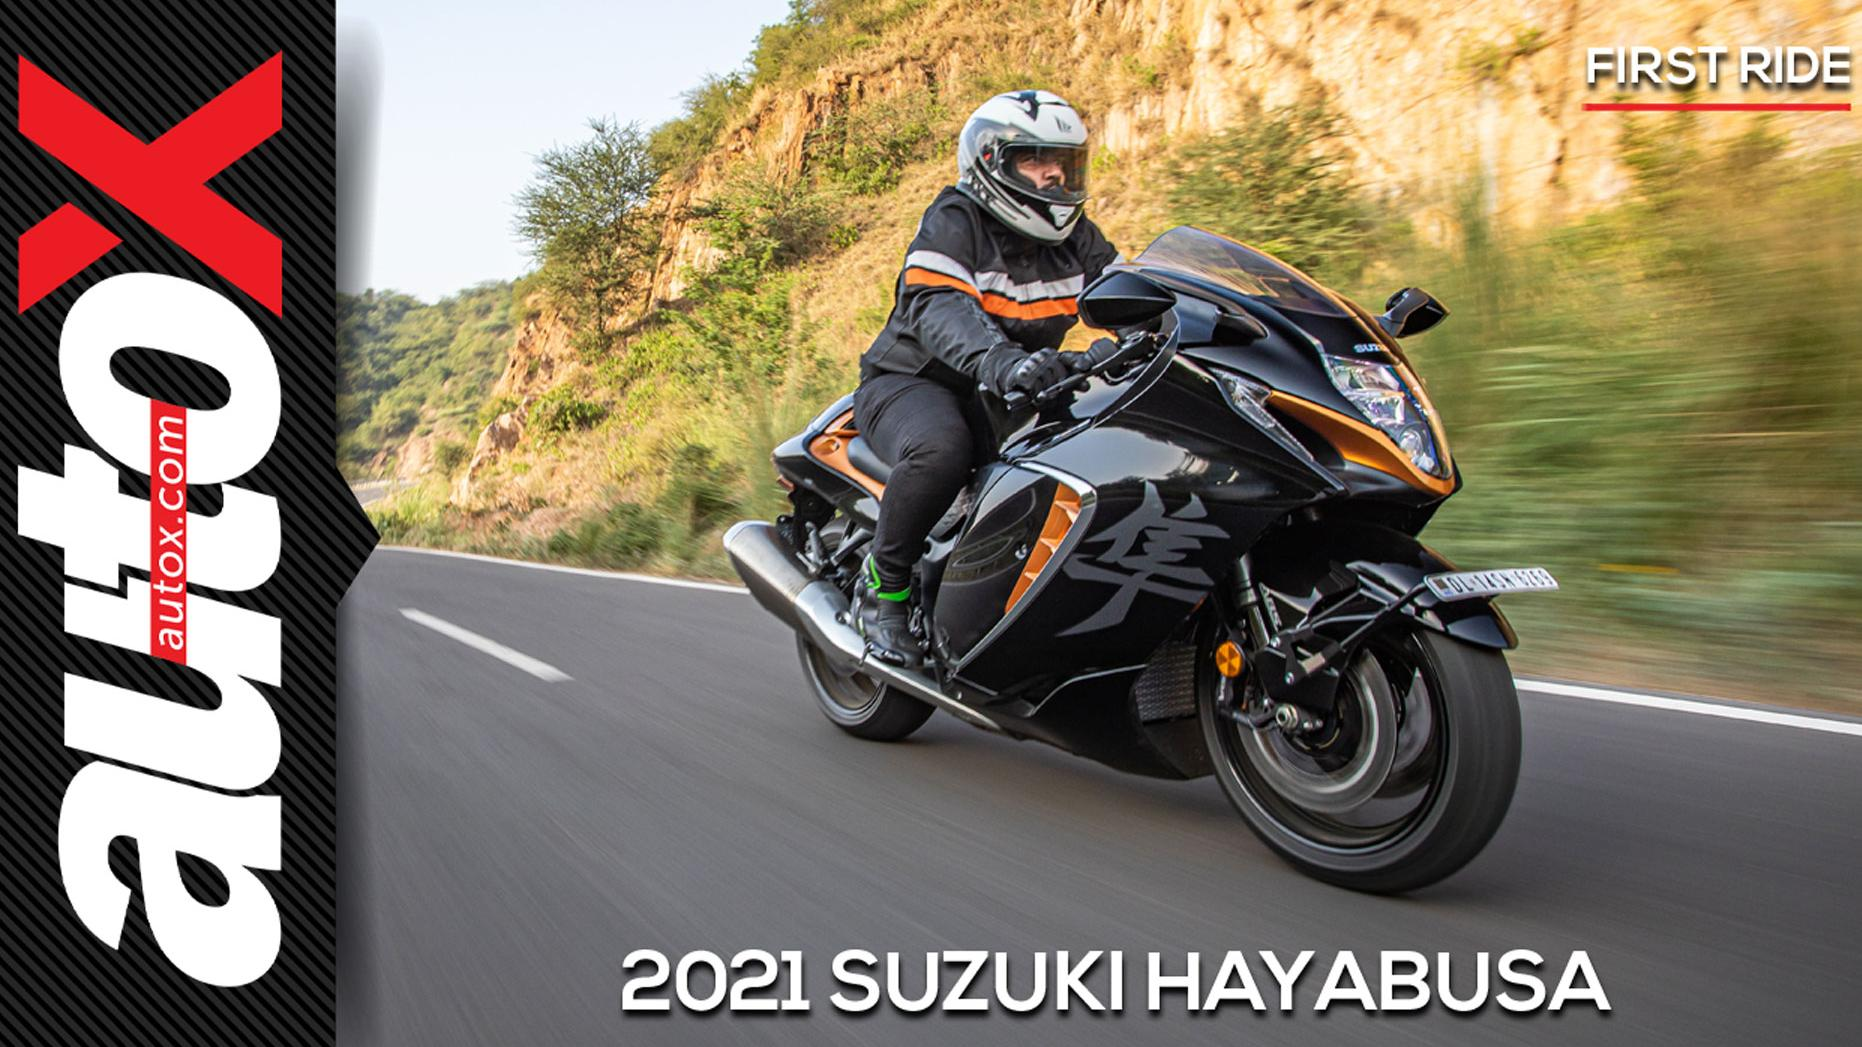 2021 Suzuki Hayabusa Review: The legend has become even more legendary! | First Ride | autoX